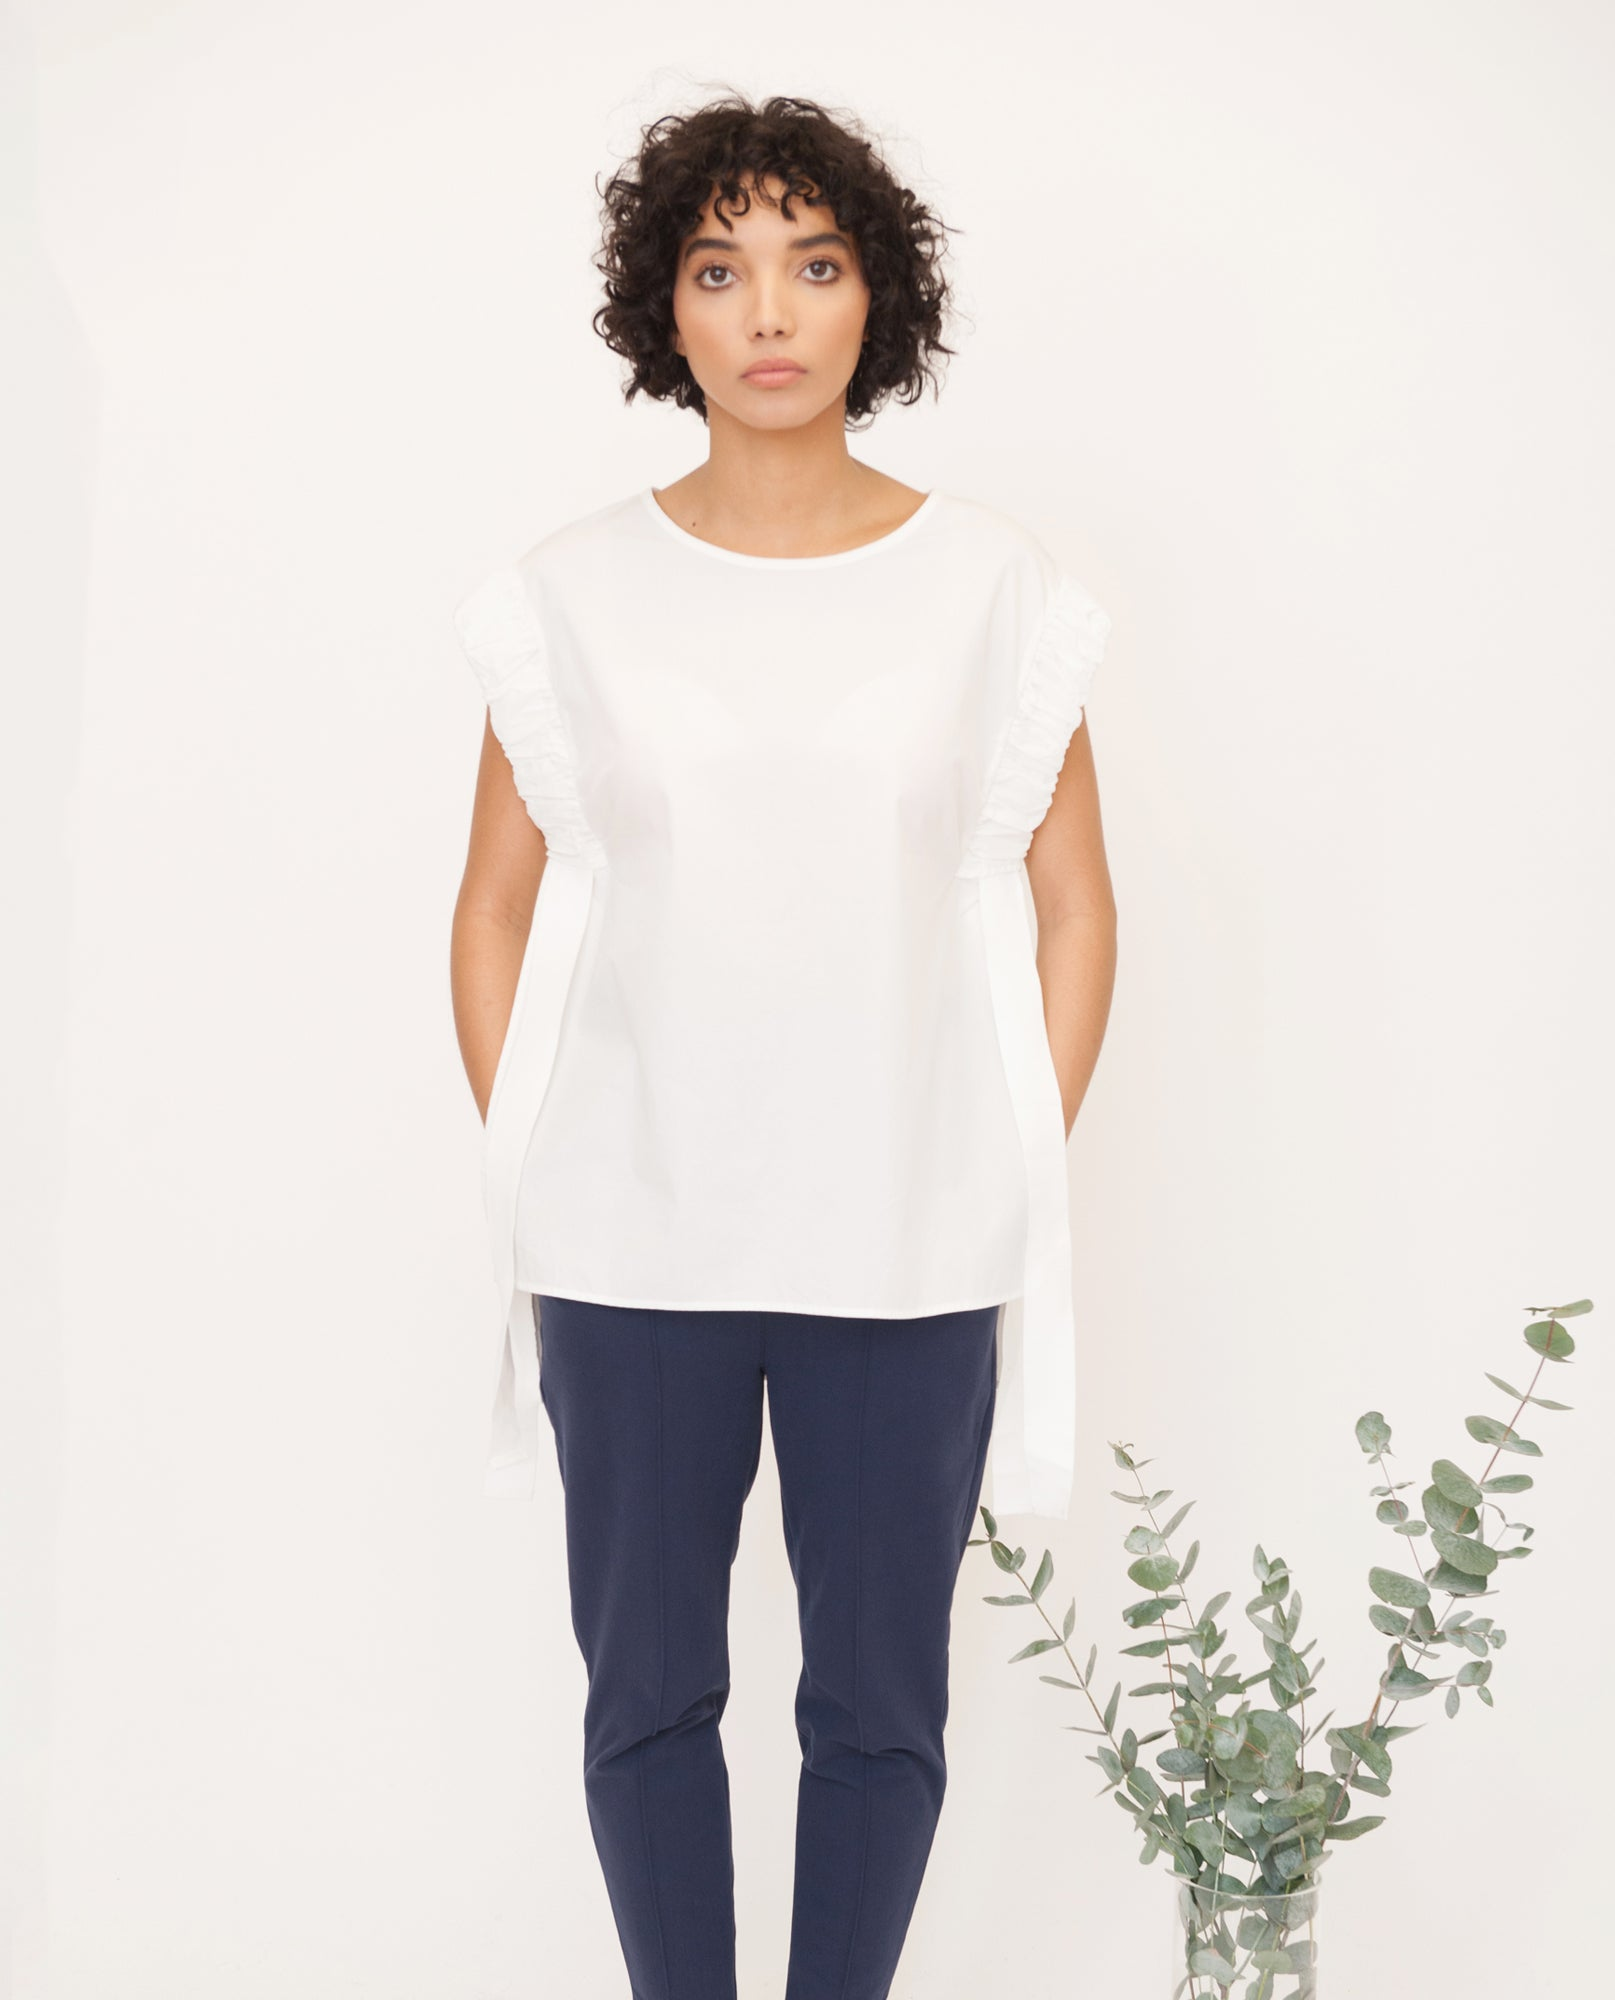 GAIA Cotton Poplin Top In White from Beaumont Organic